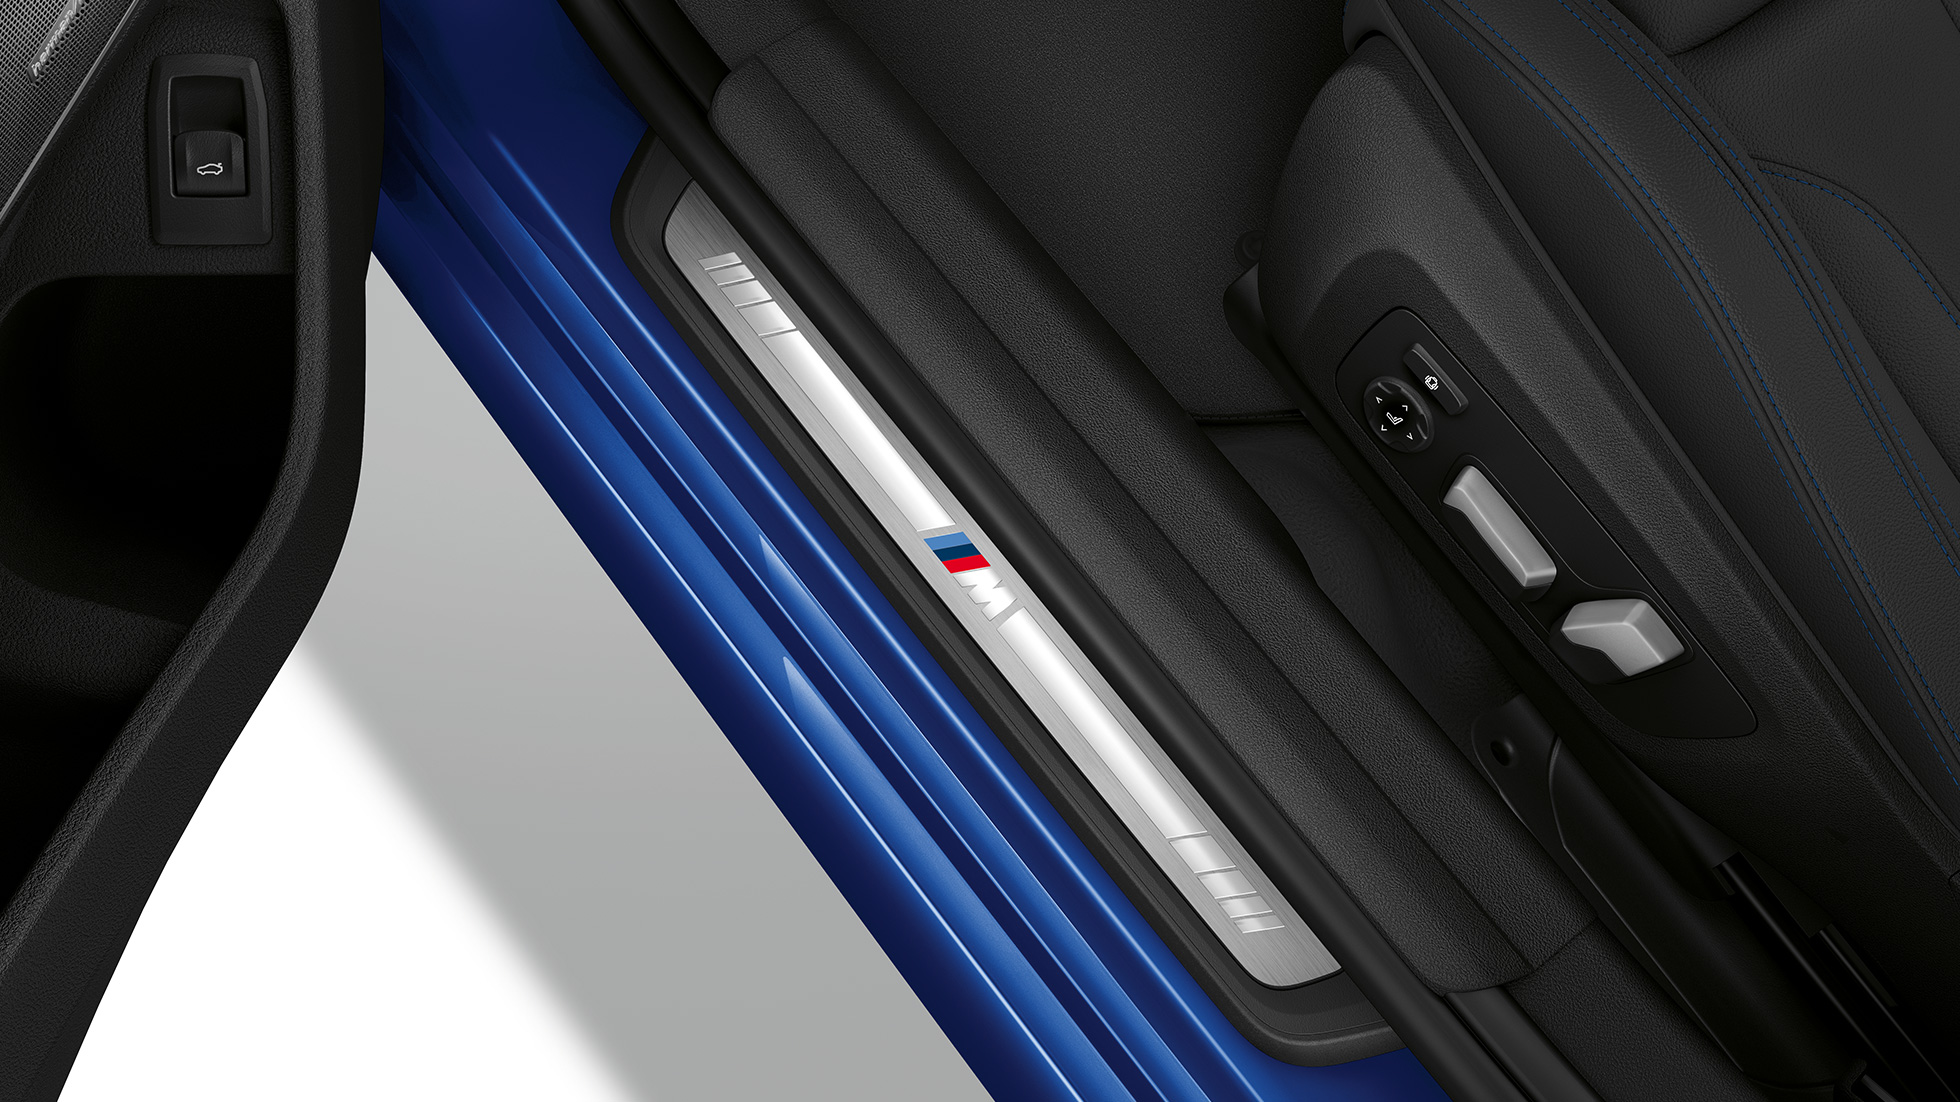 Top view of the door sill of the BMW 3 Series Sedan with Model M Sport features.